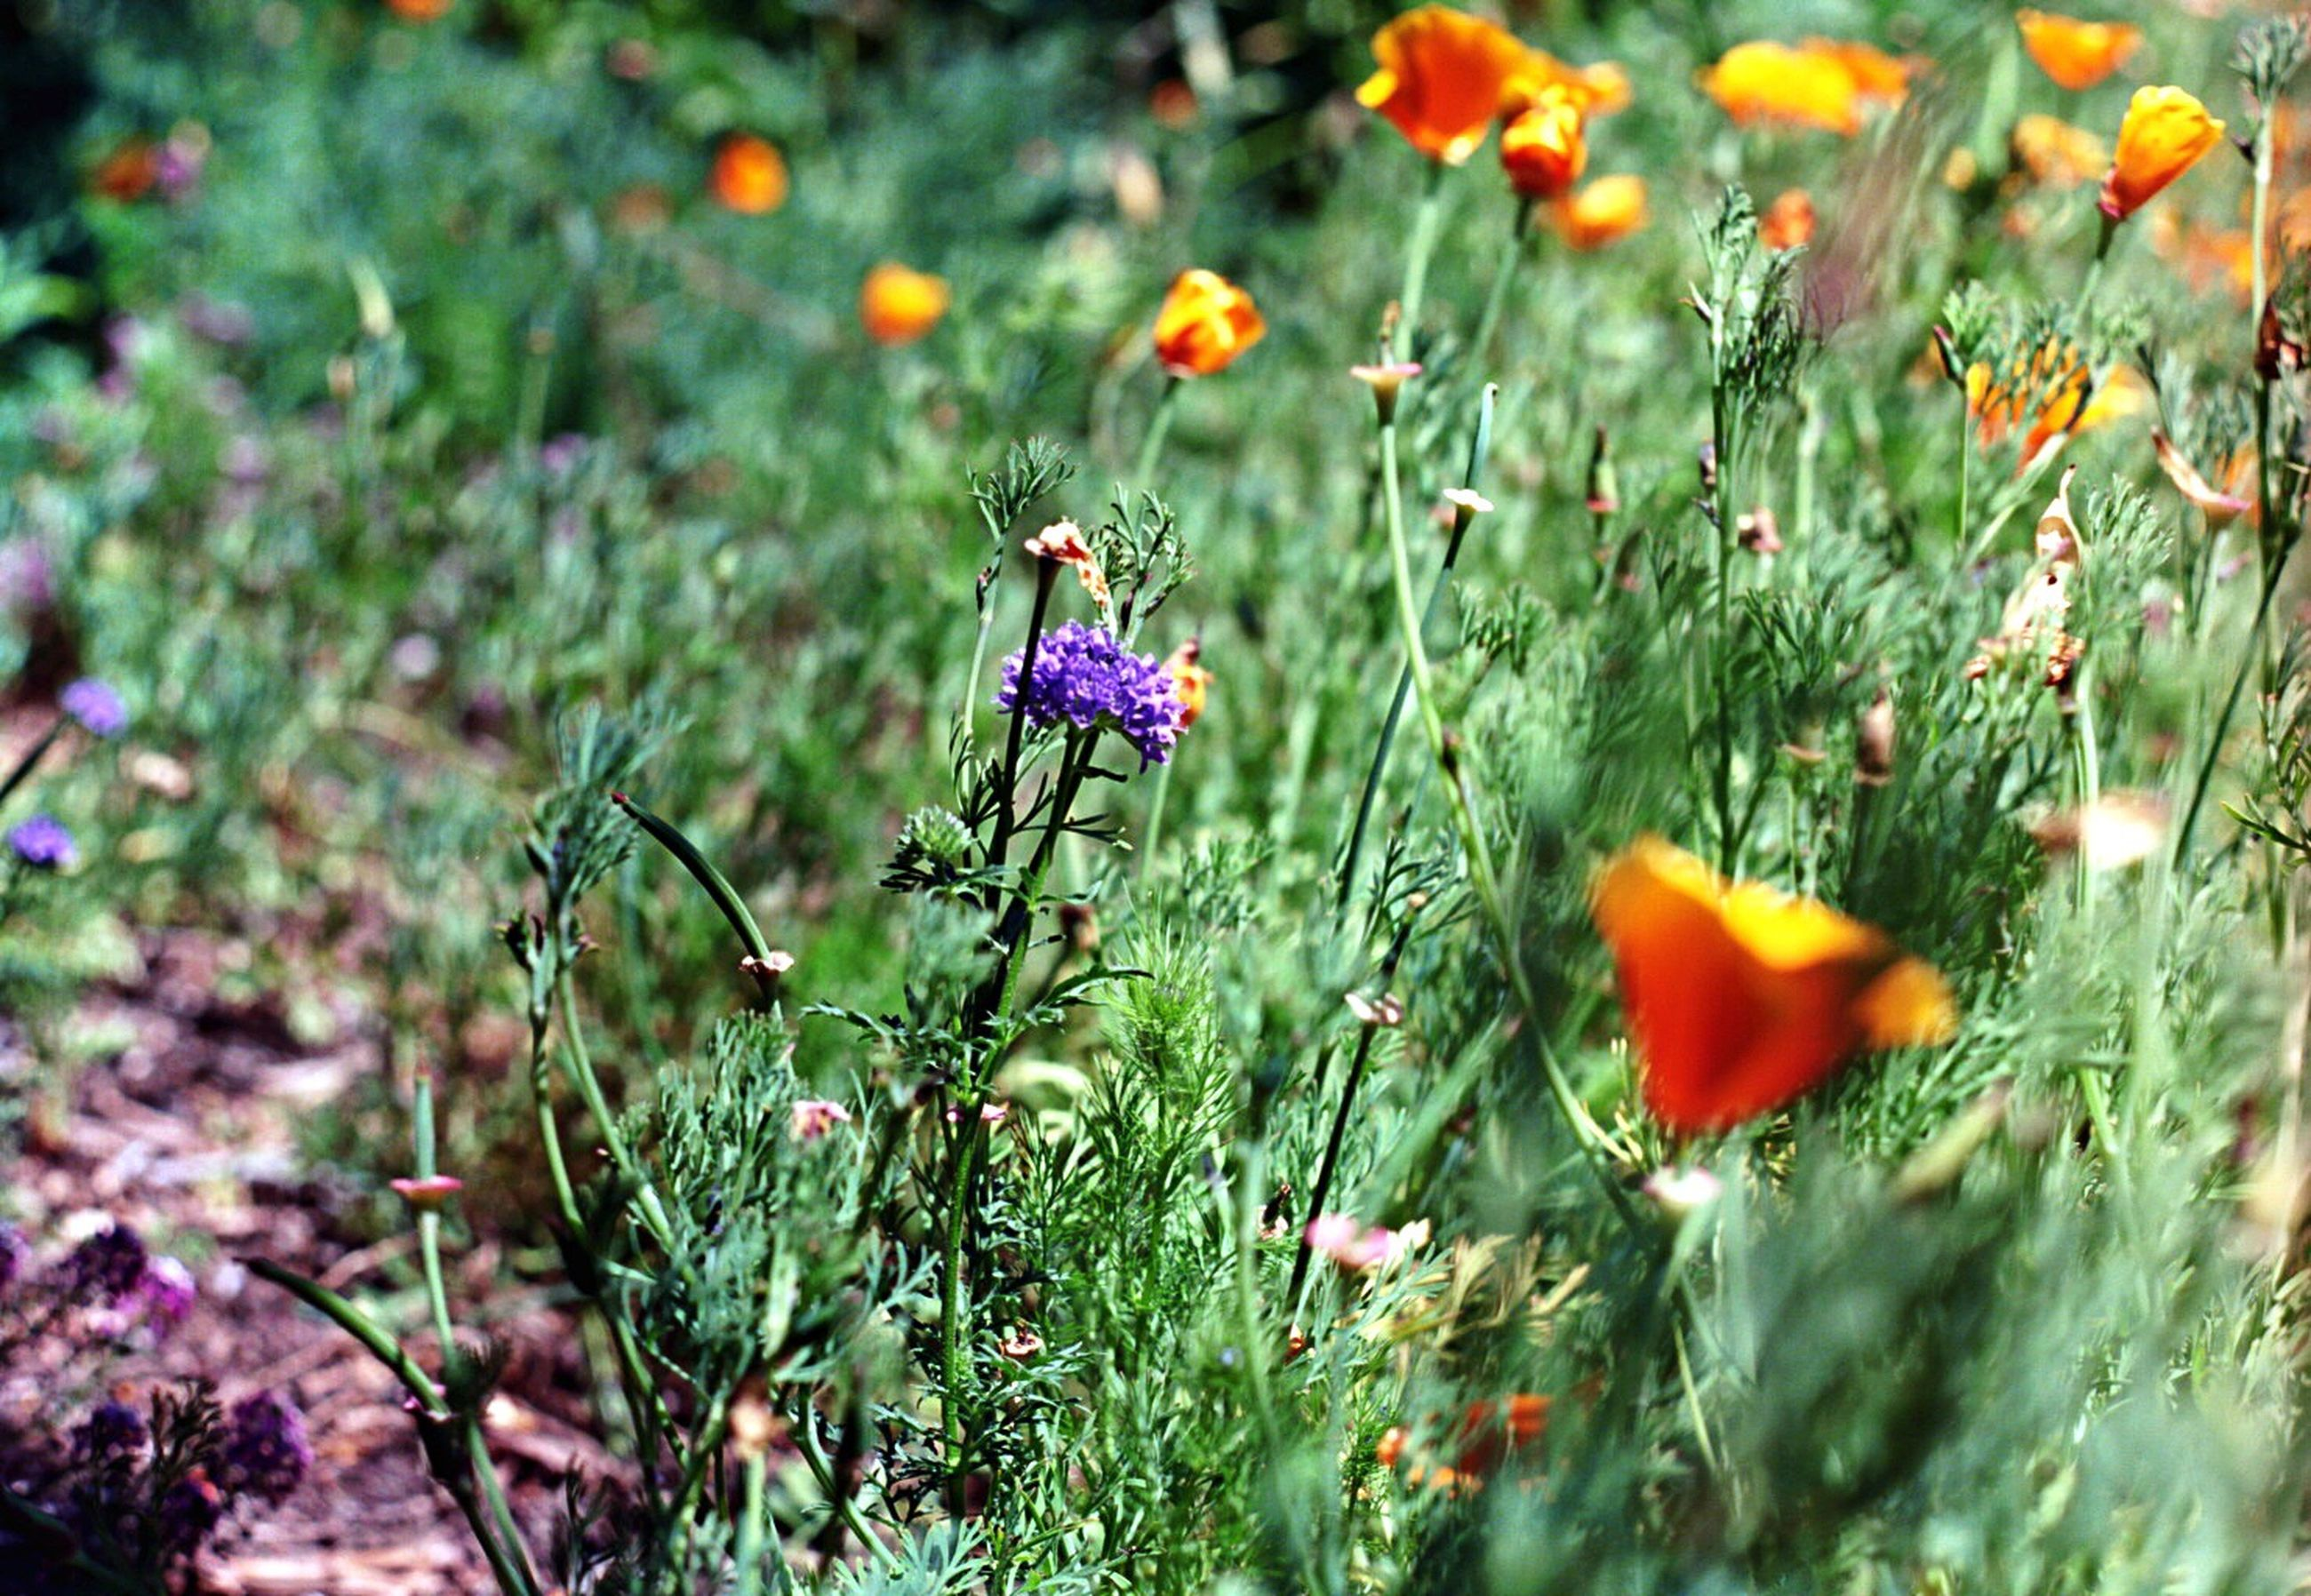 flower, nature, growth, plant, beauty in nature, wildflower, outdoors, no people, flower head, field, close-up, freshness, day, poppy, fragility